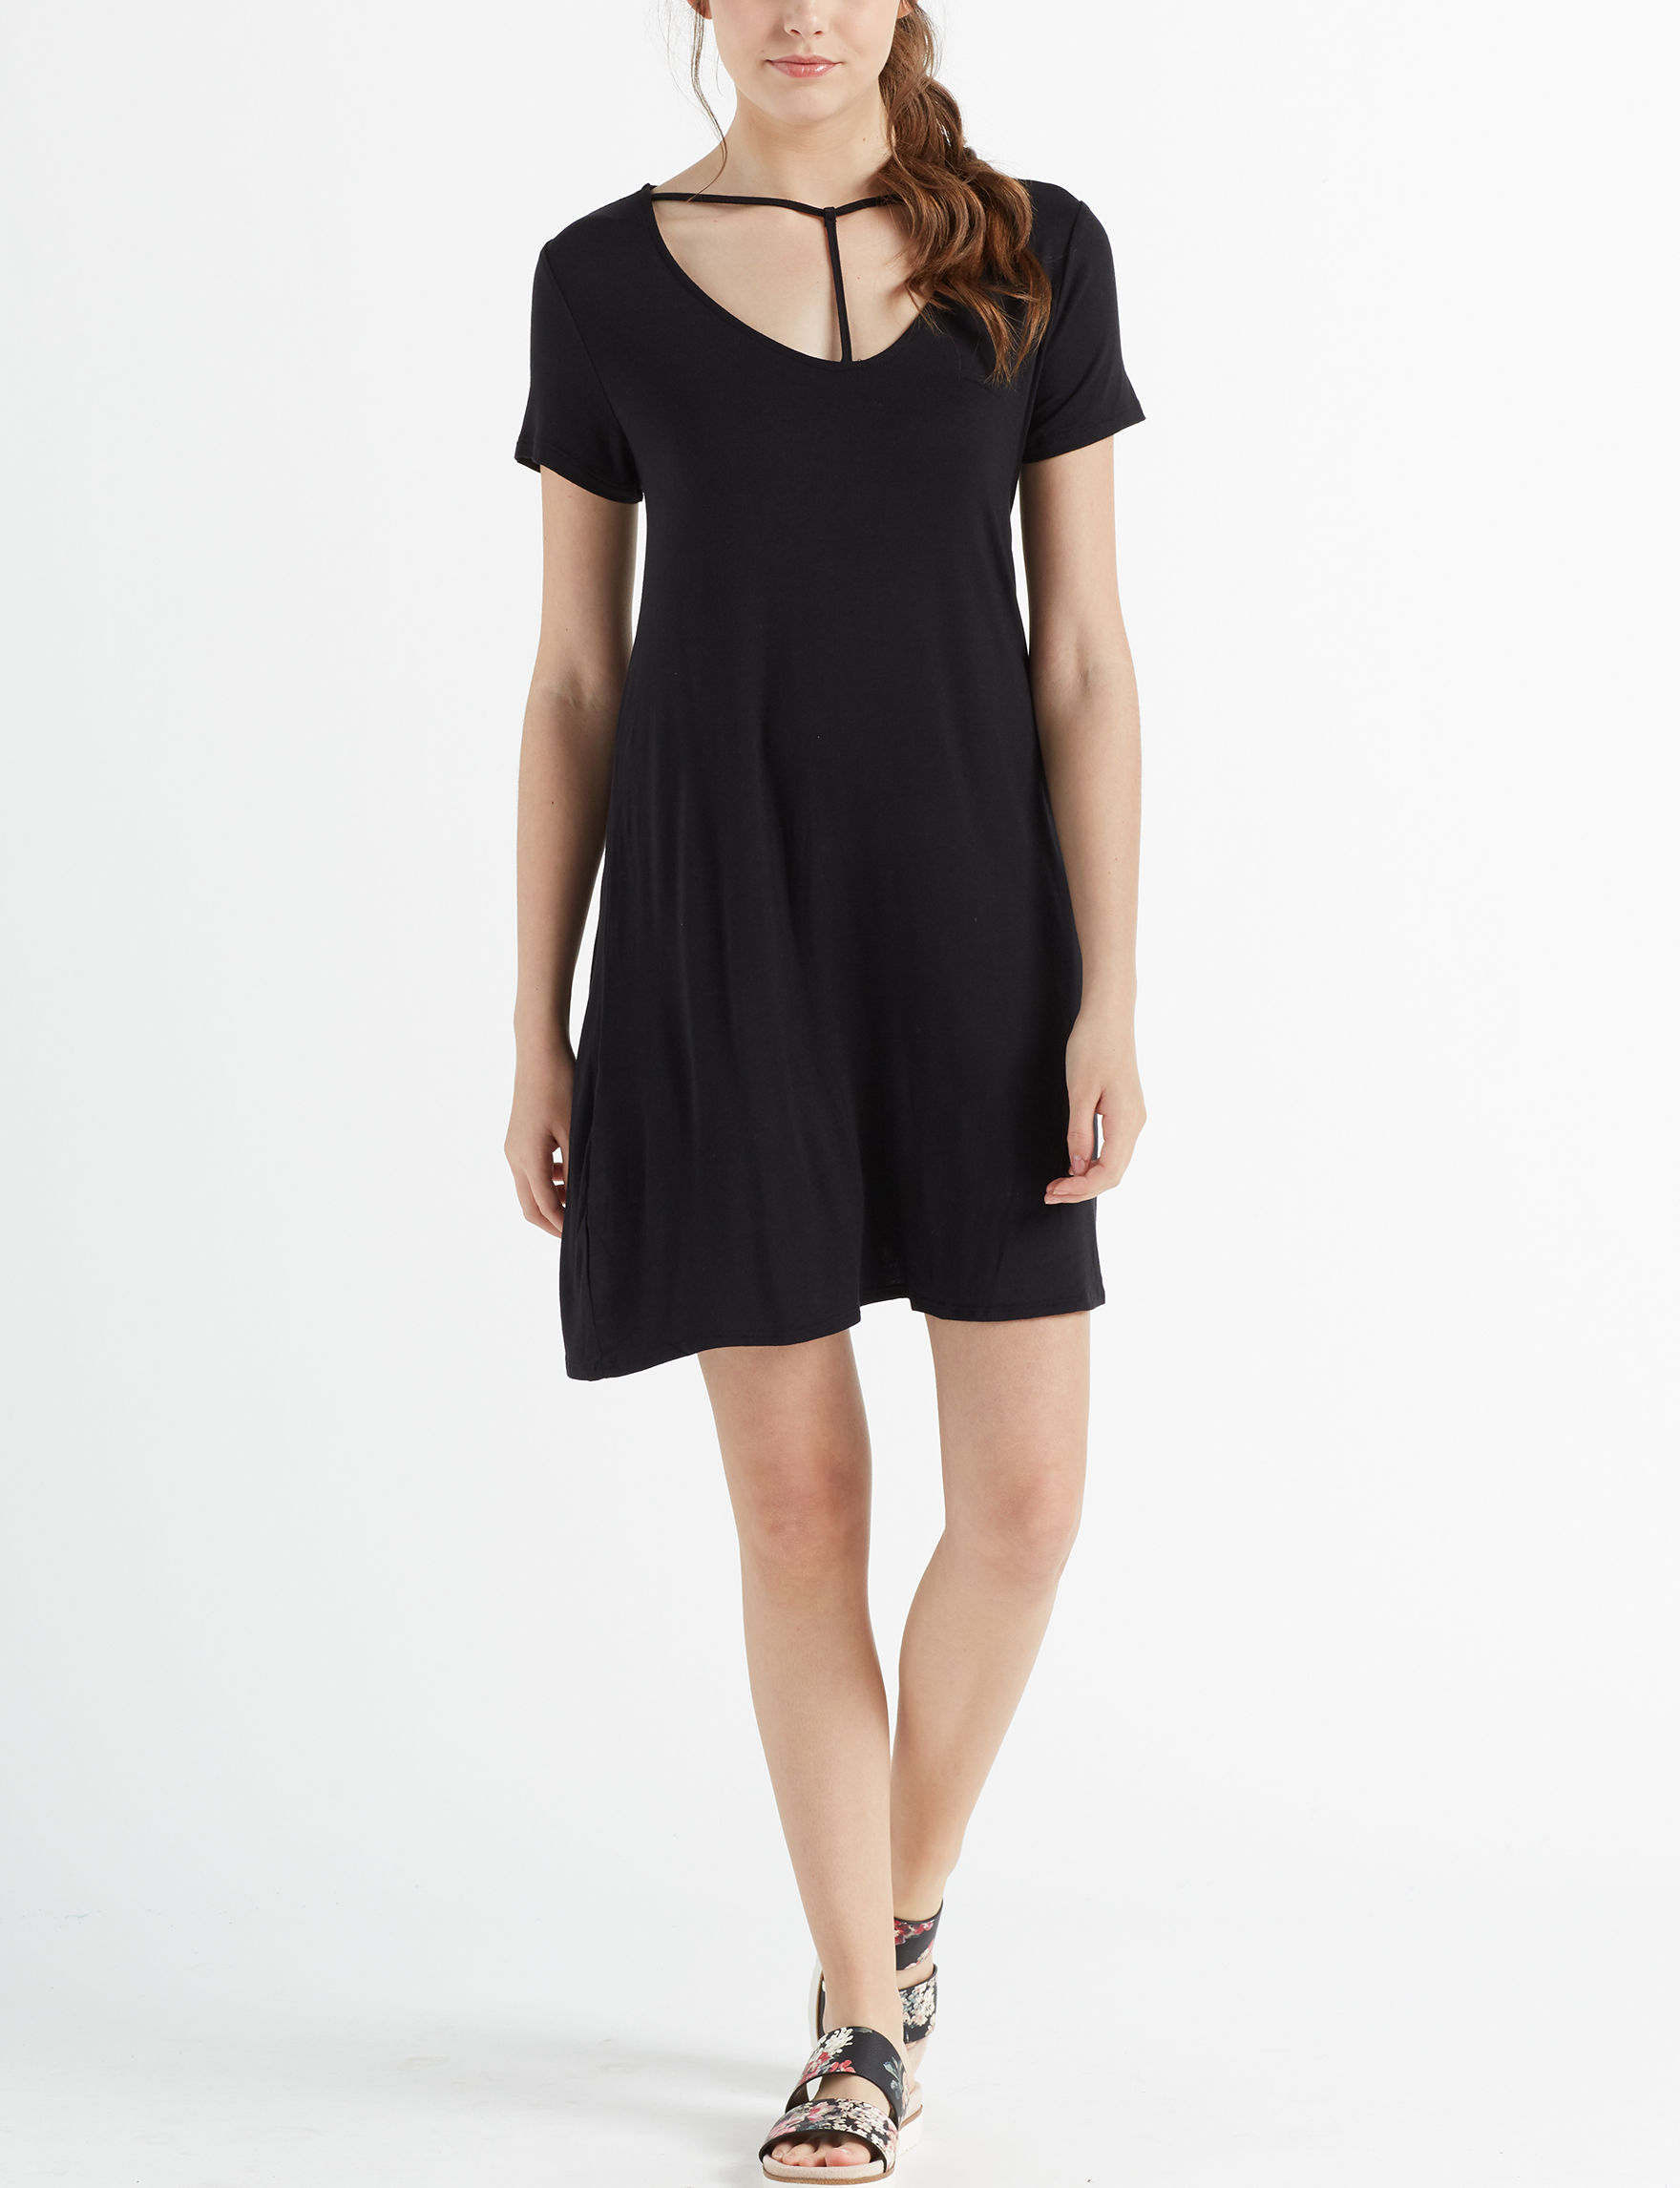 Love Fire Black Everyday & Casual Shift Dresses